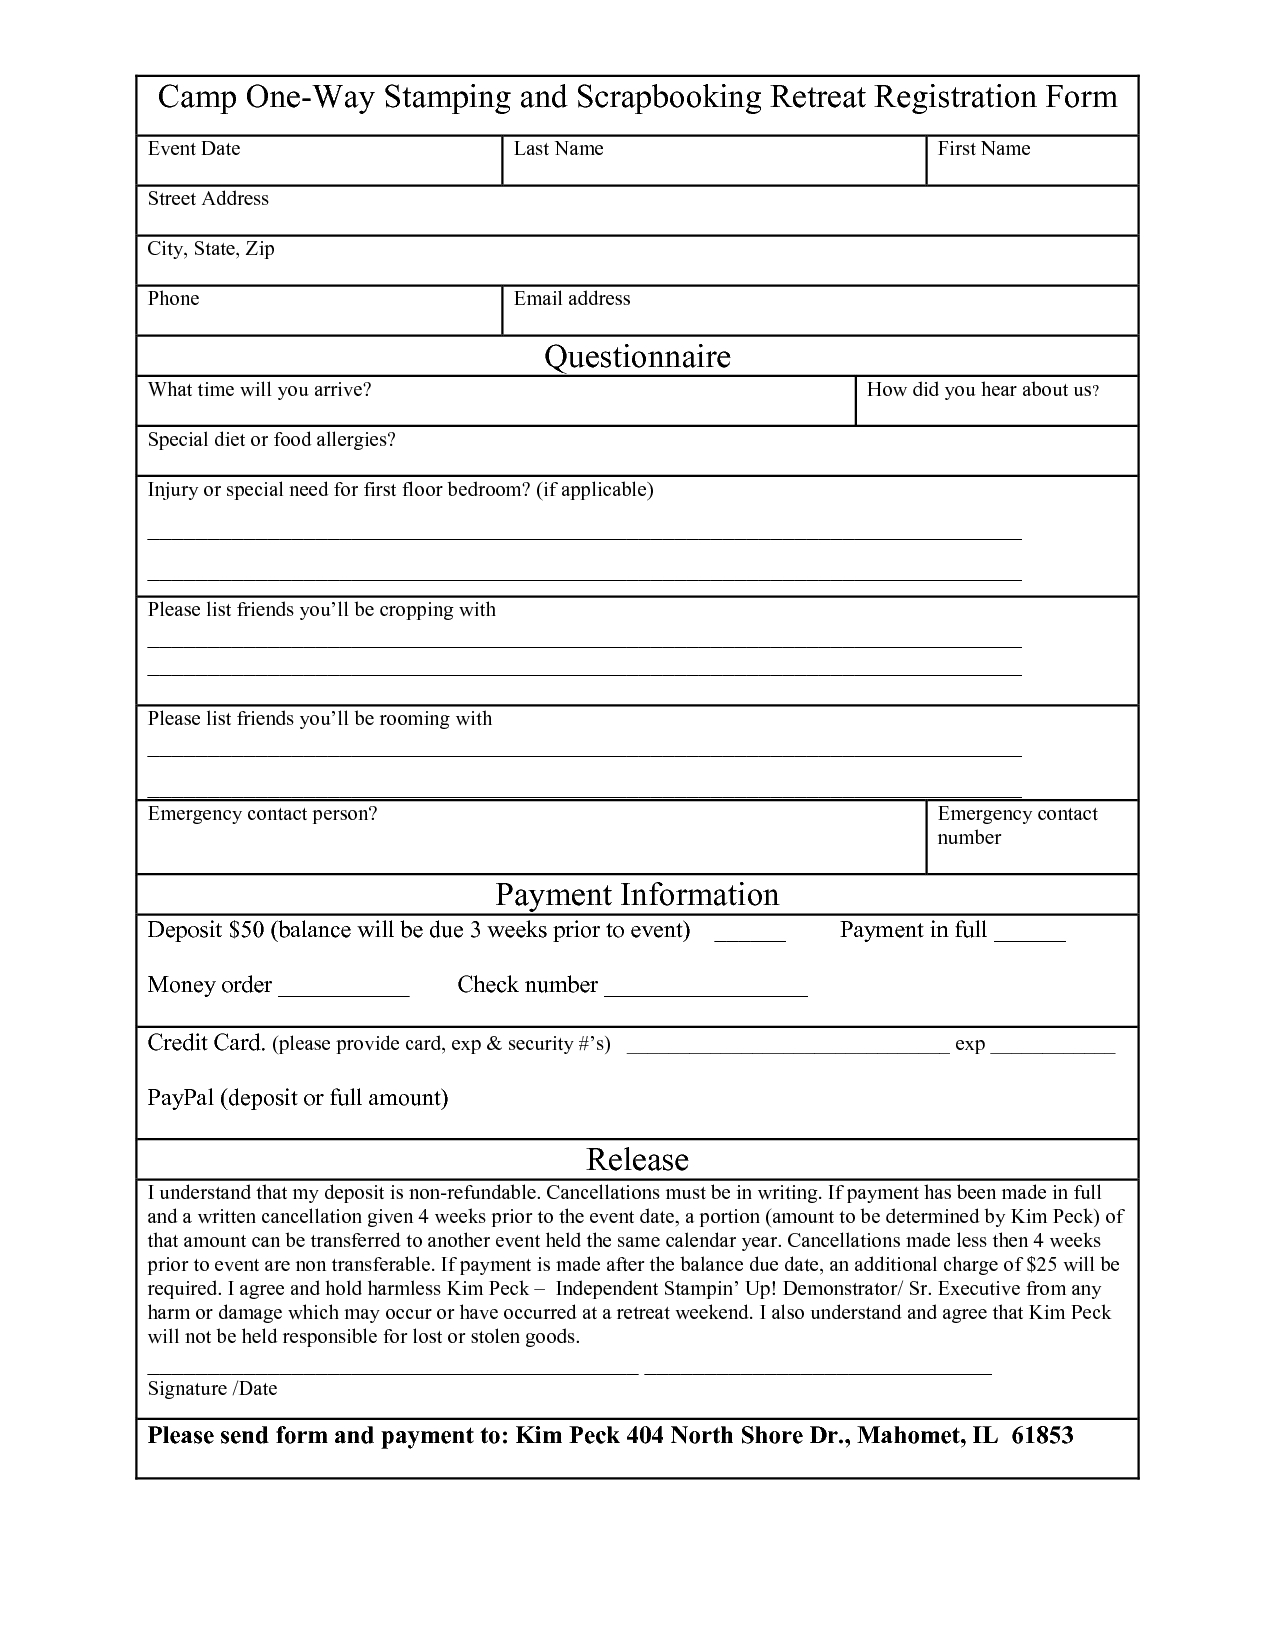 001 Free Registration Form Templates Template Phenomenal For Registration Form Template Word Free